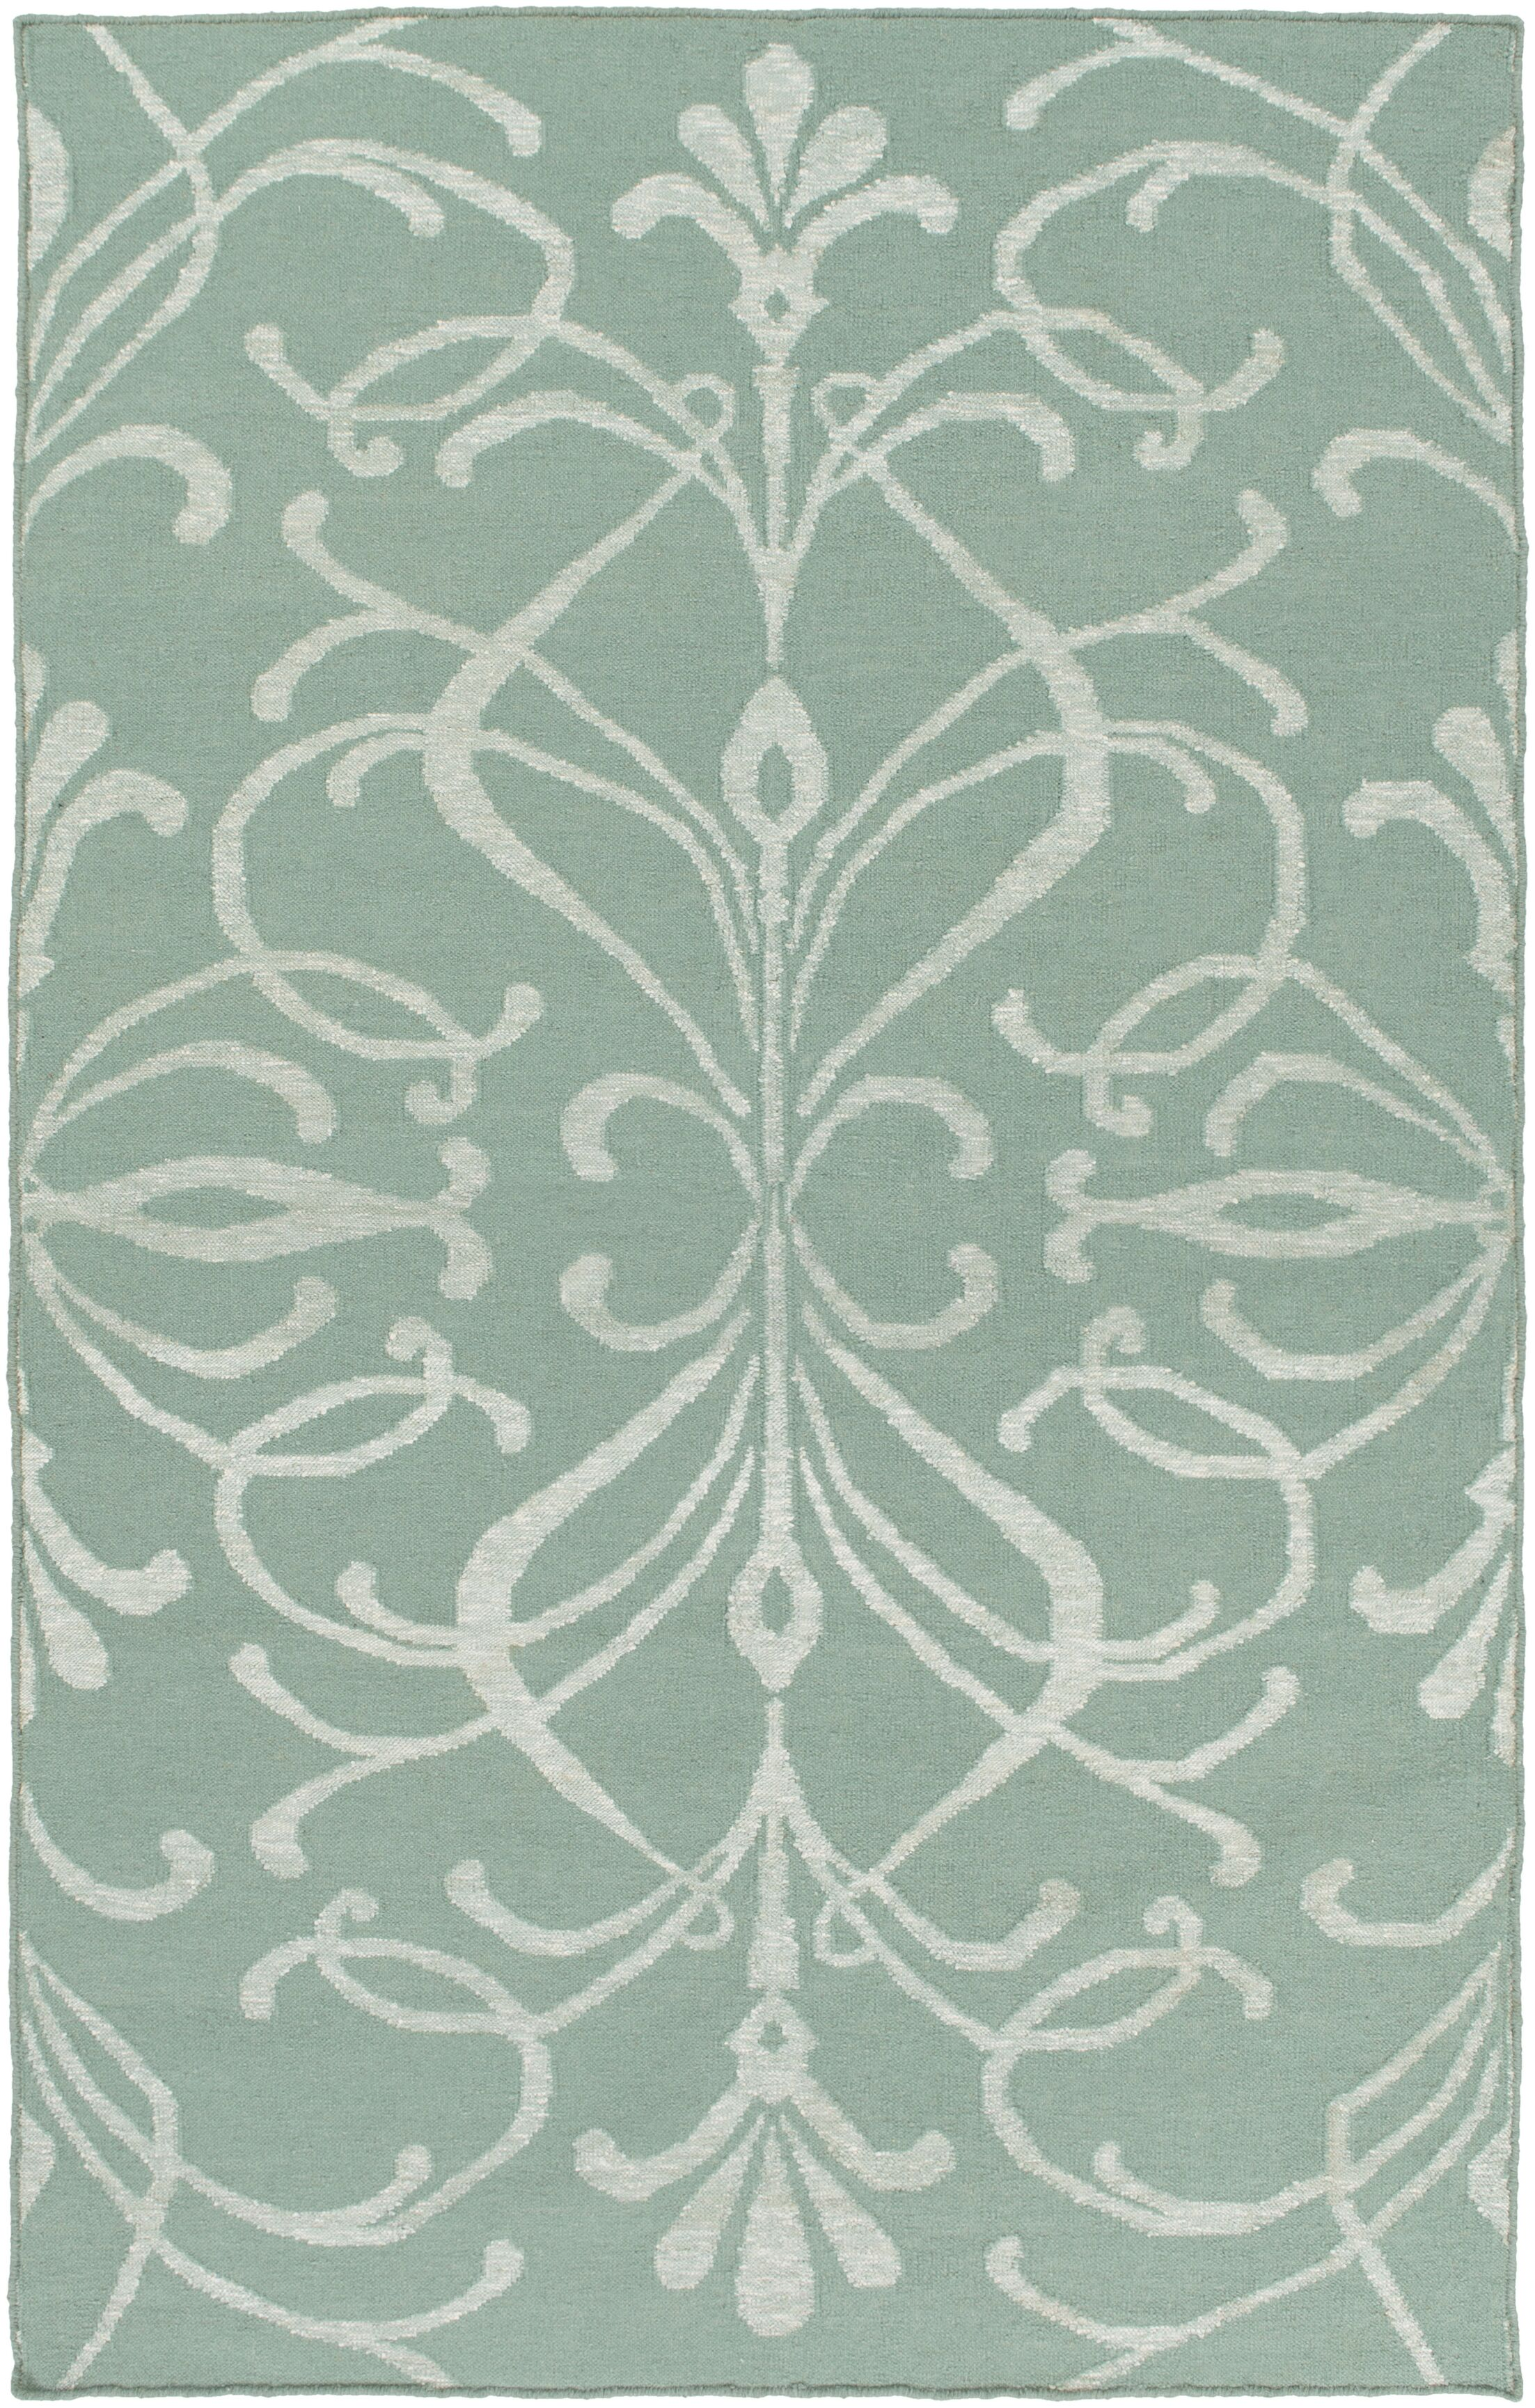 Delavan Hand Woven Green Area Rug Rug Size: Rectangle 6' x 9'